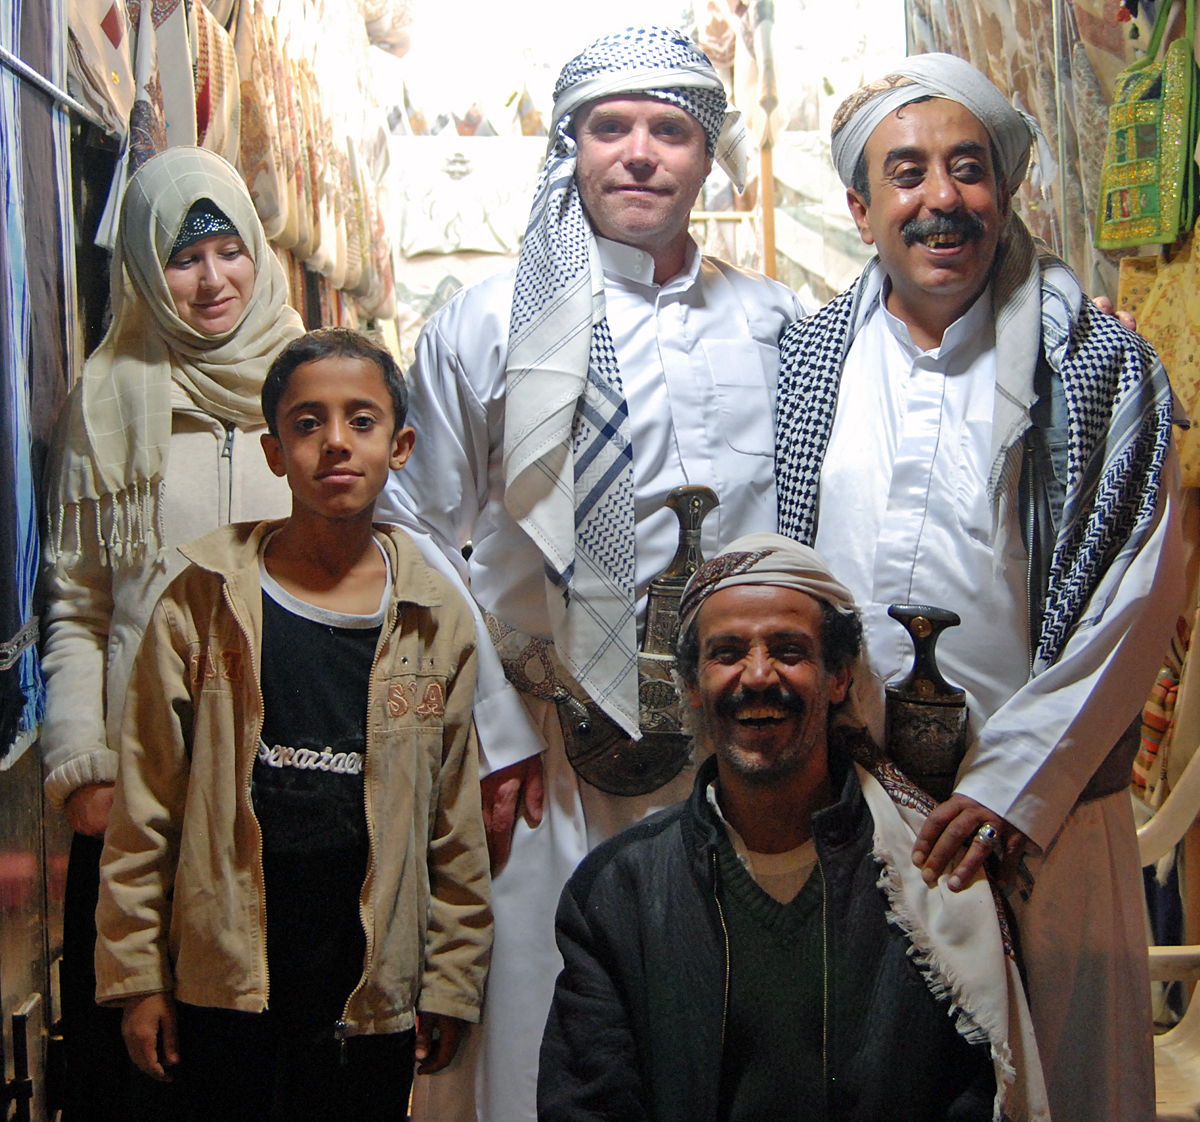 Me together with friends in the souk.....